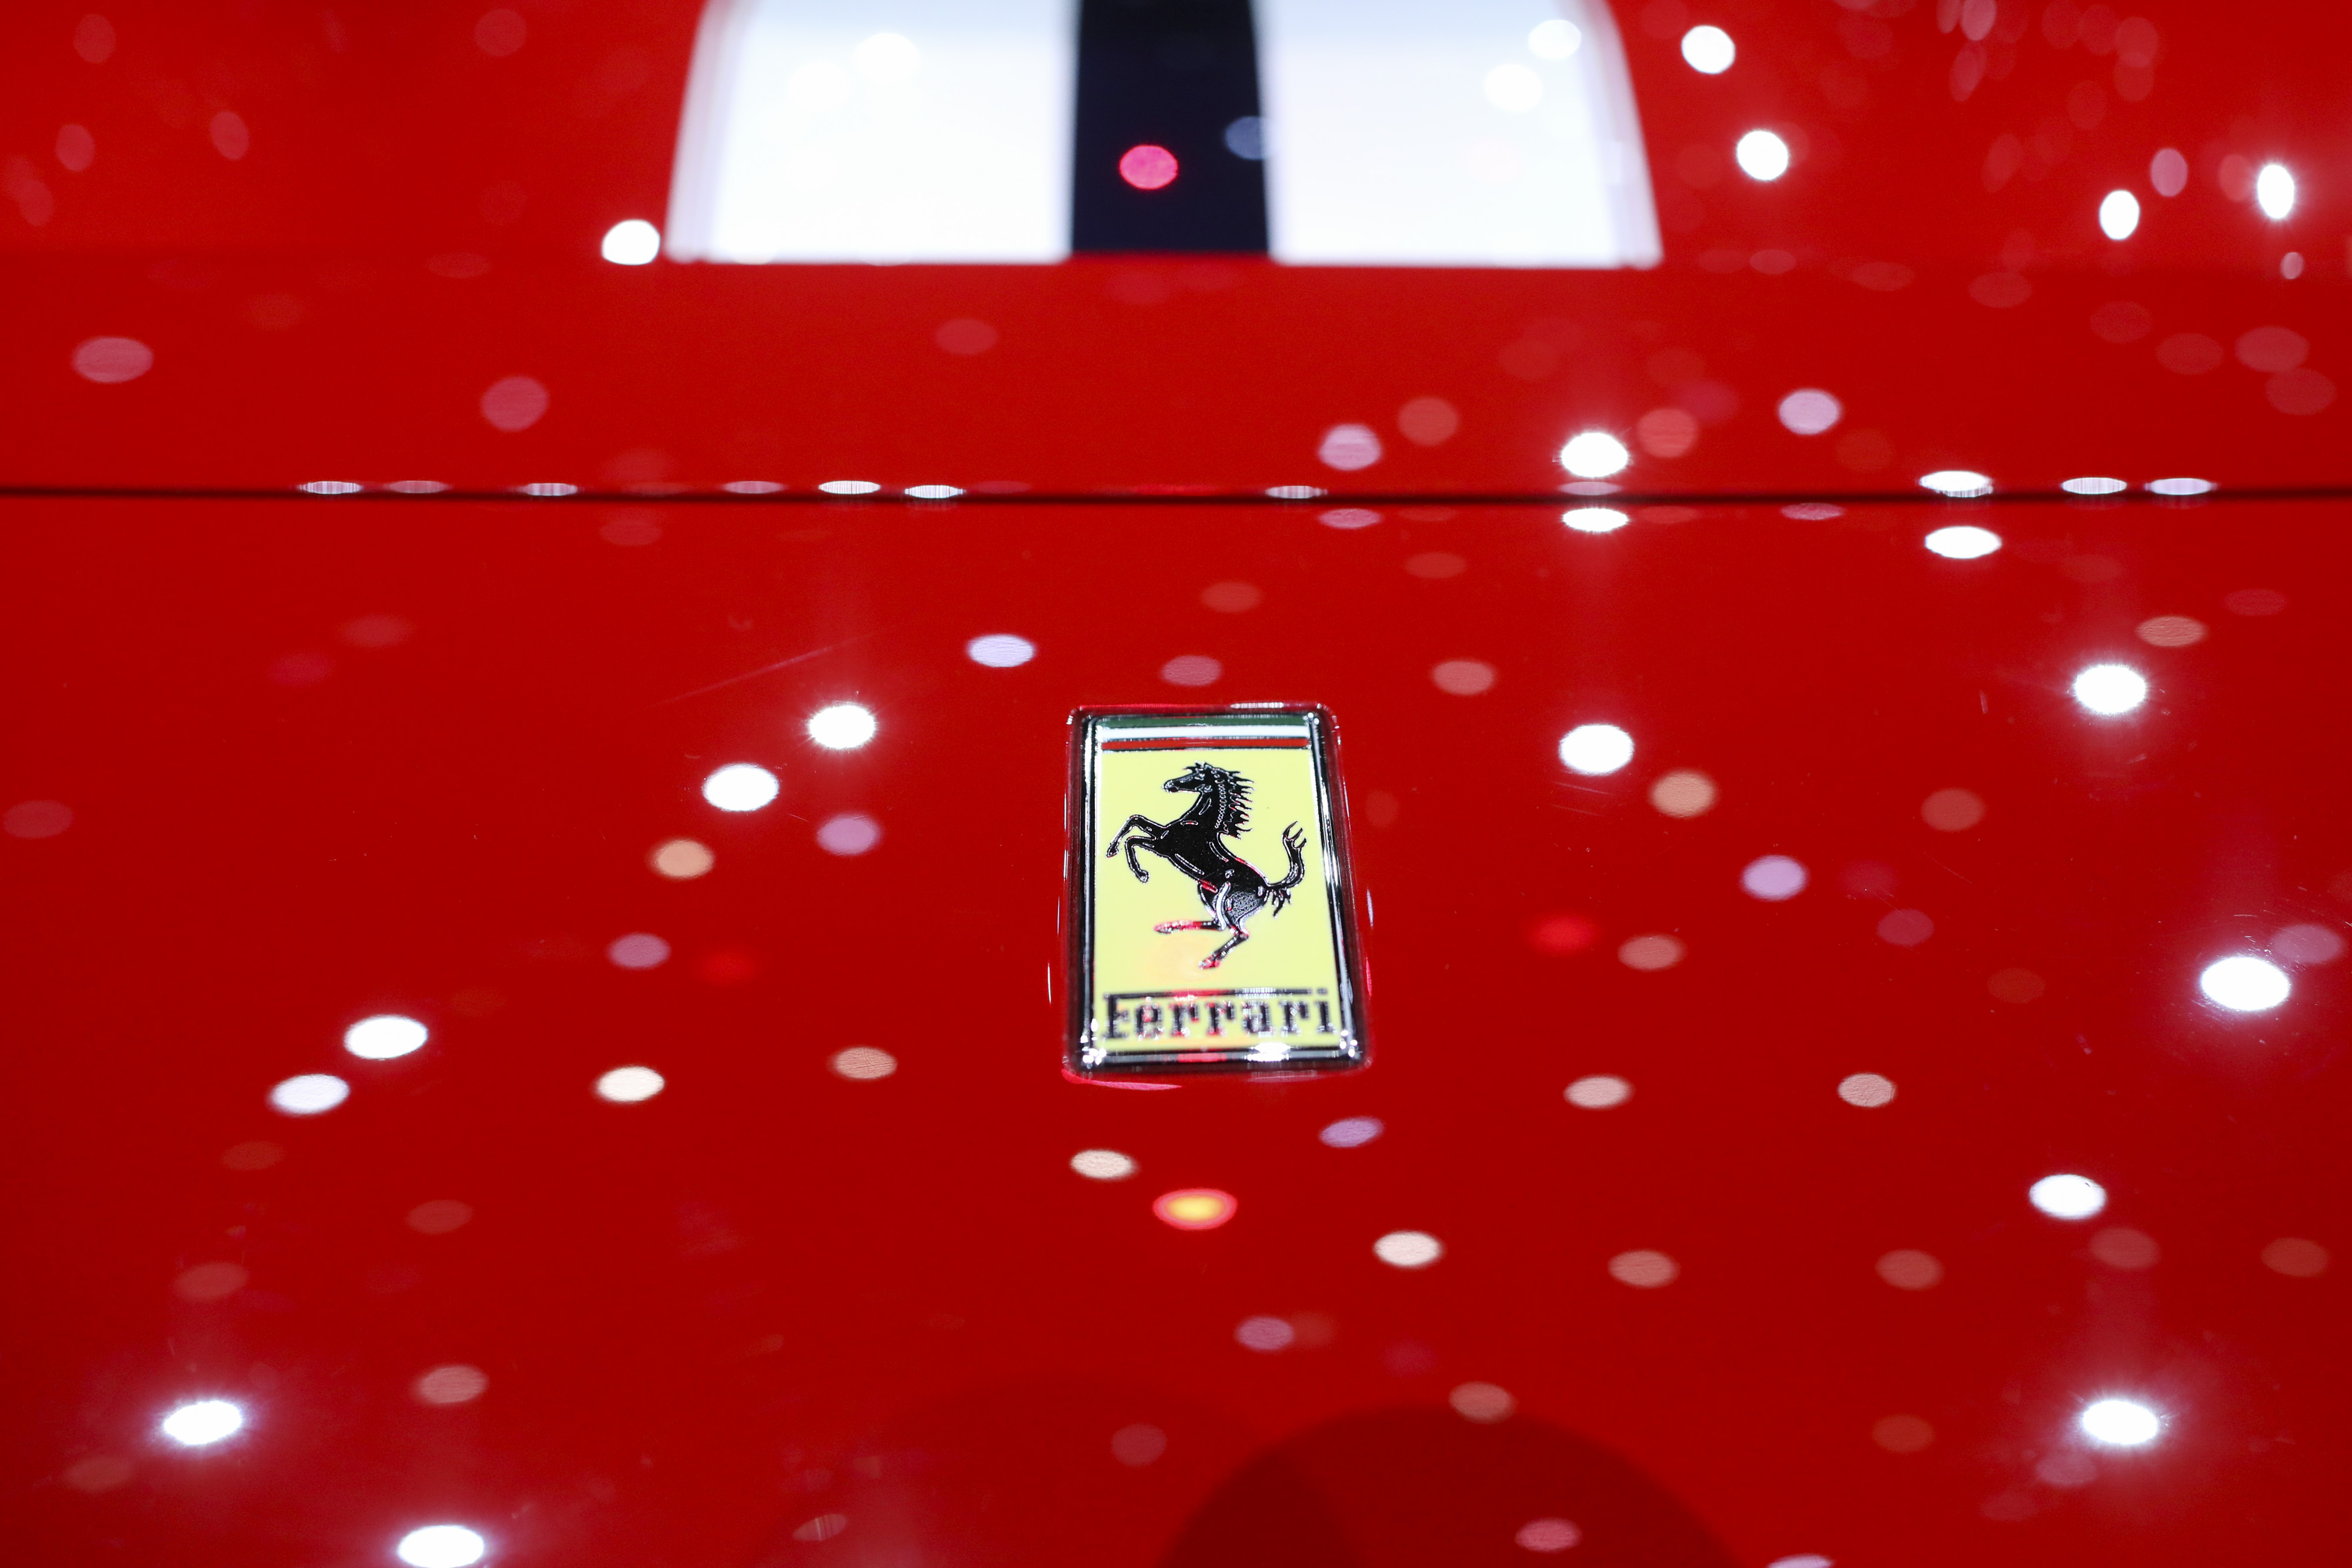 Ferrari Quietly—Very Quietly—Tests Electric Car